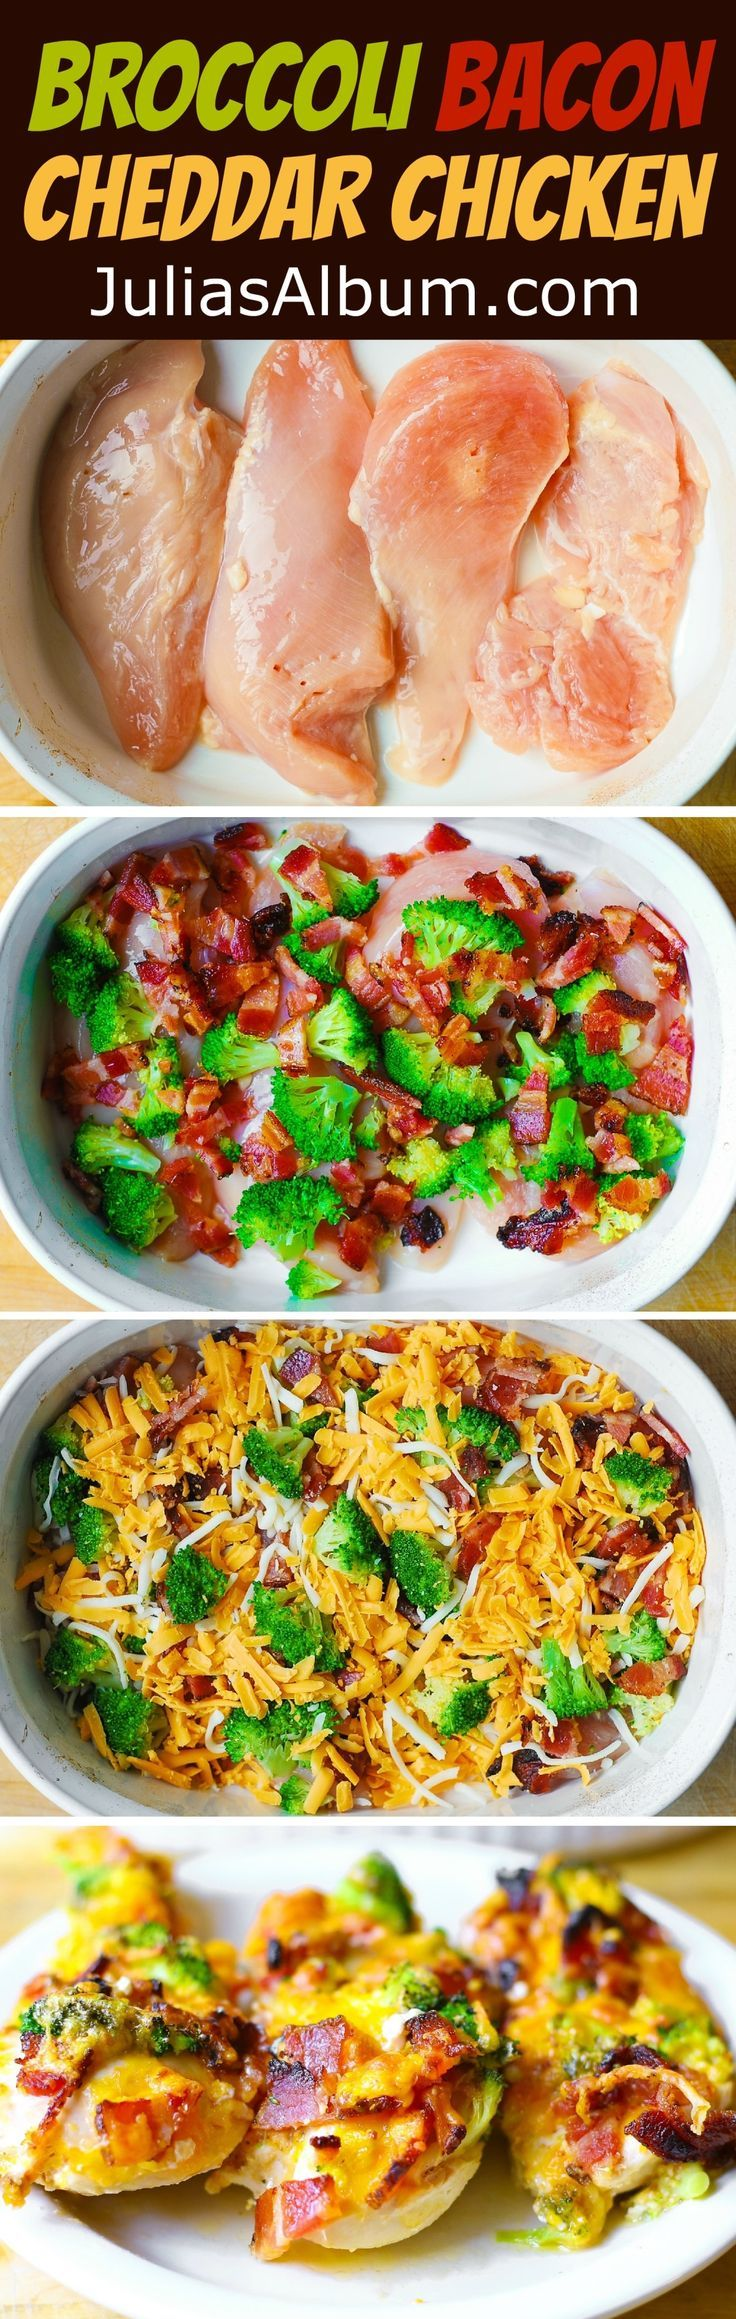 25 best ideas about high carb foods on pinterest atkins for Atkins cuisine baking mix substitute